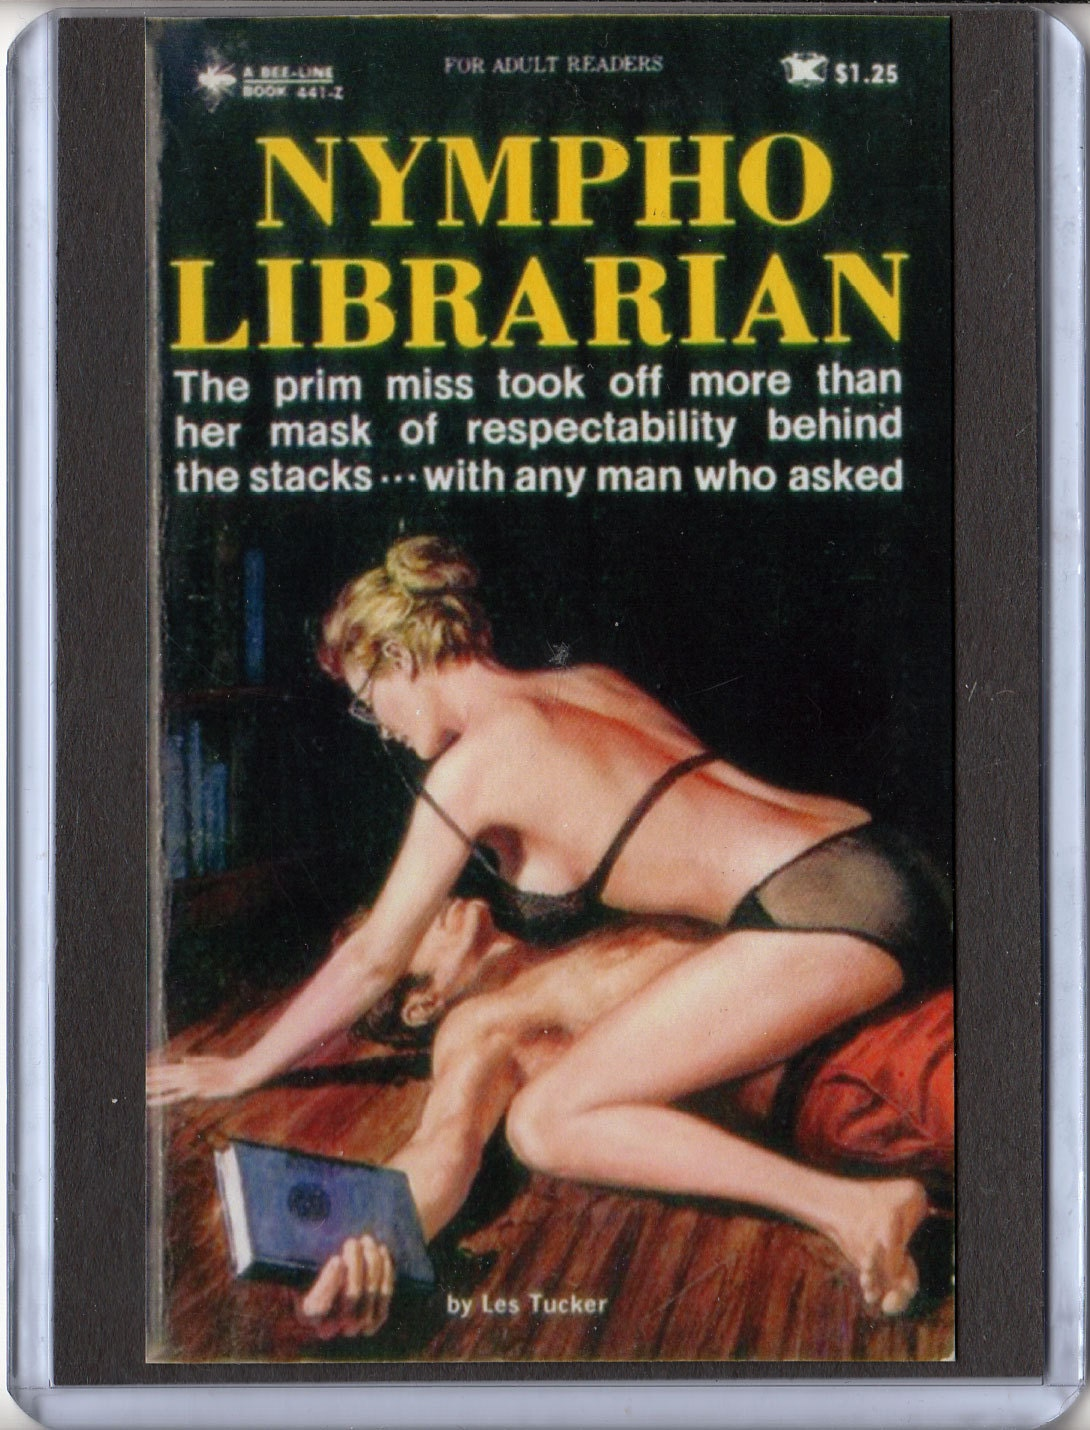 pulp paperback magnet 3 x 4 inch campy cover art mature nympho